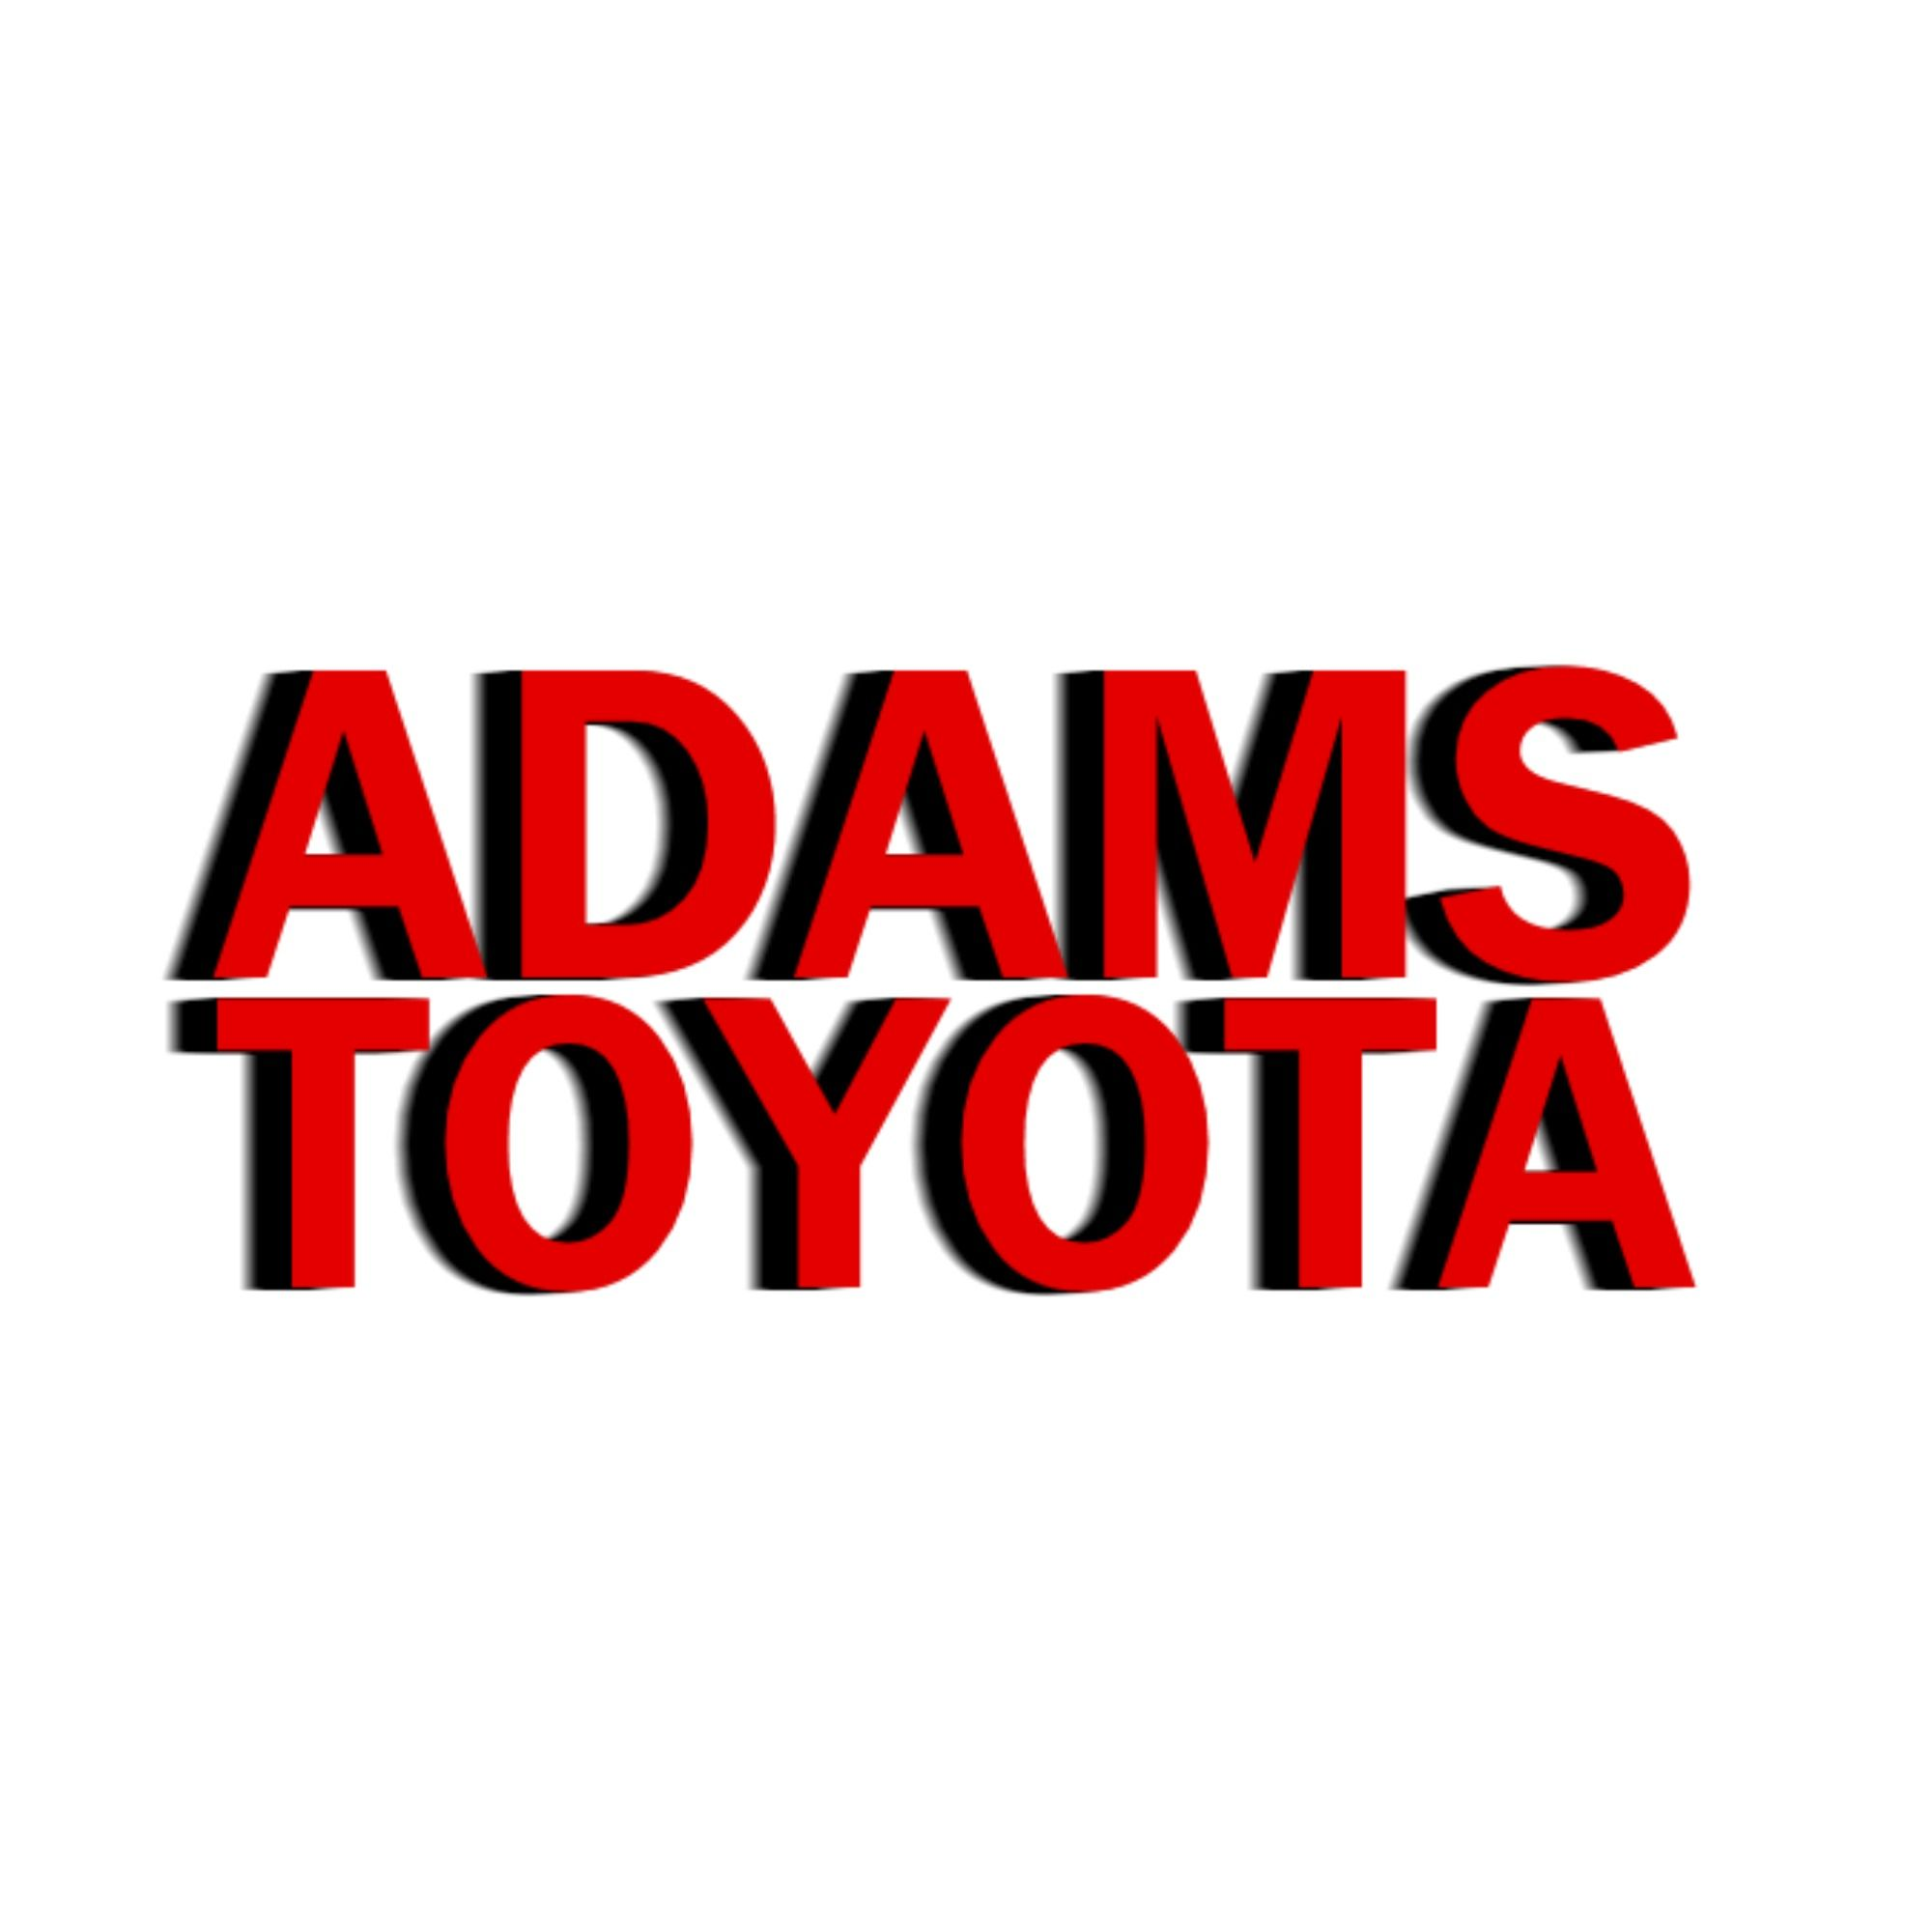 Adams toyota is a full service sales and service center serving the kansas city area